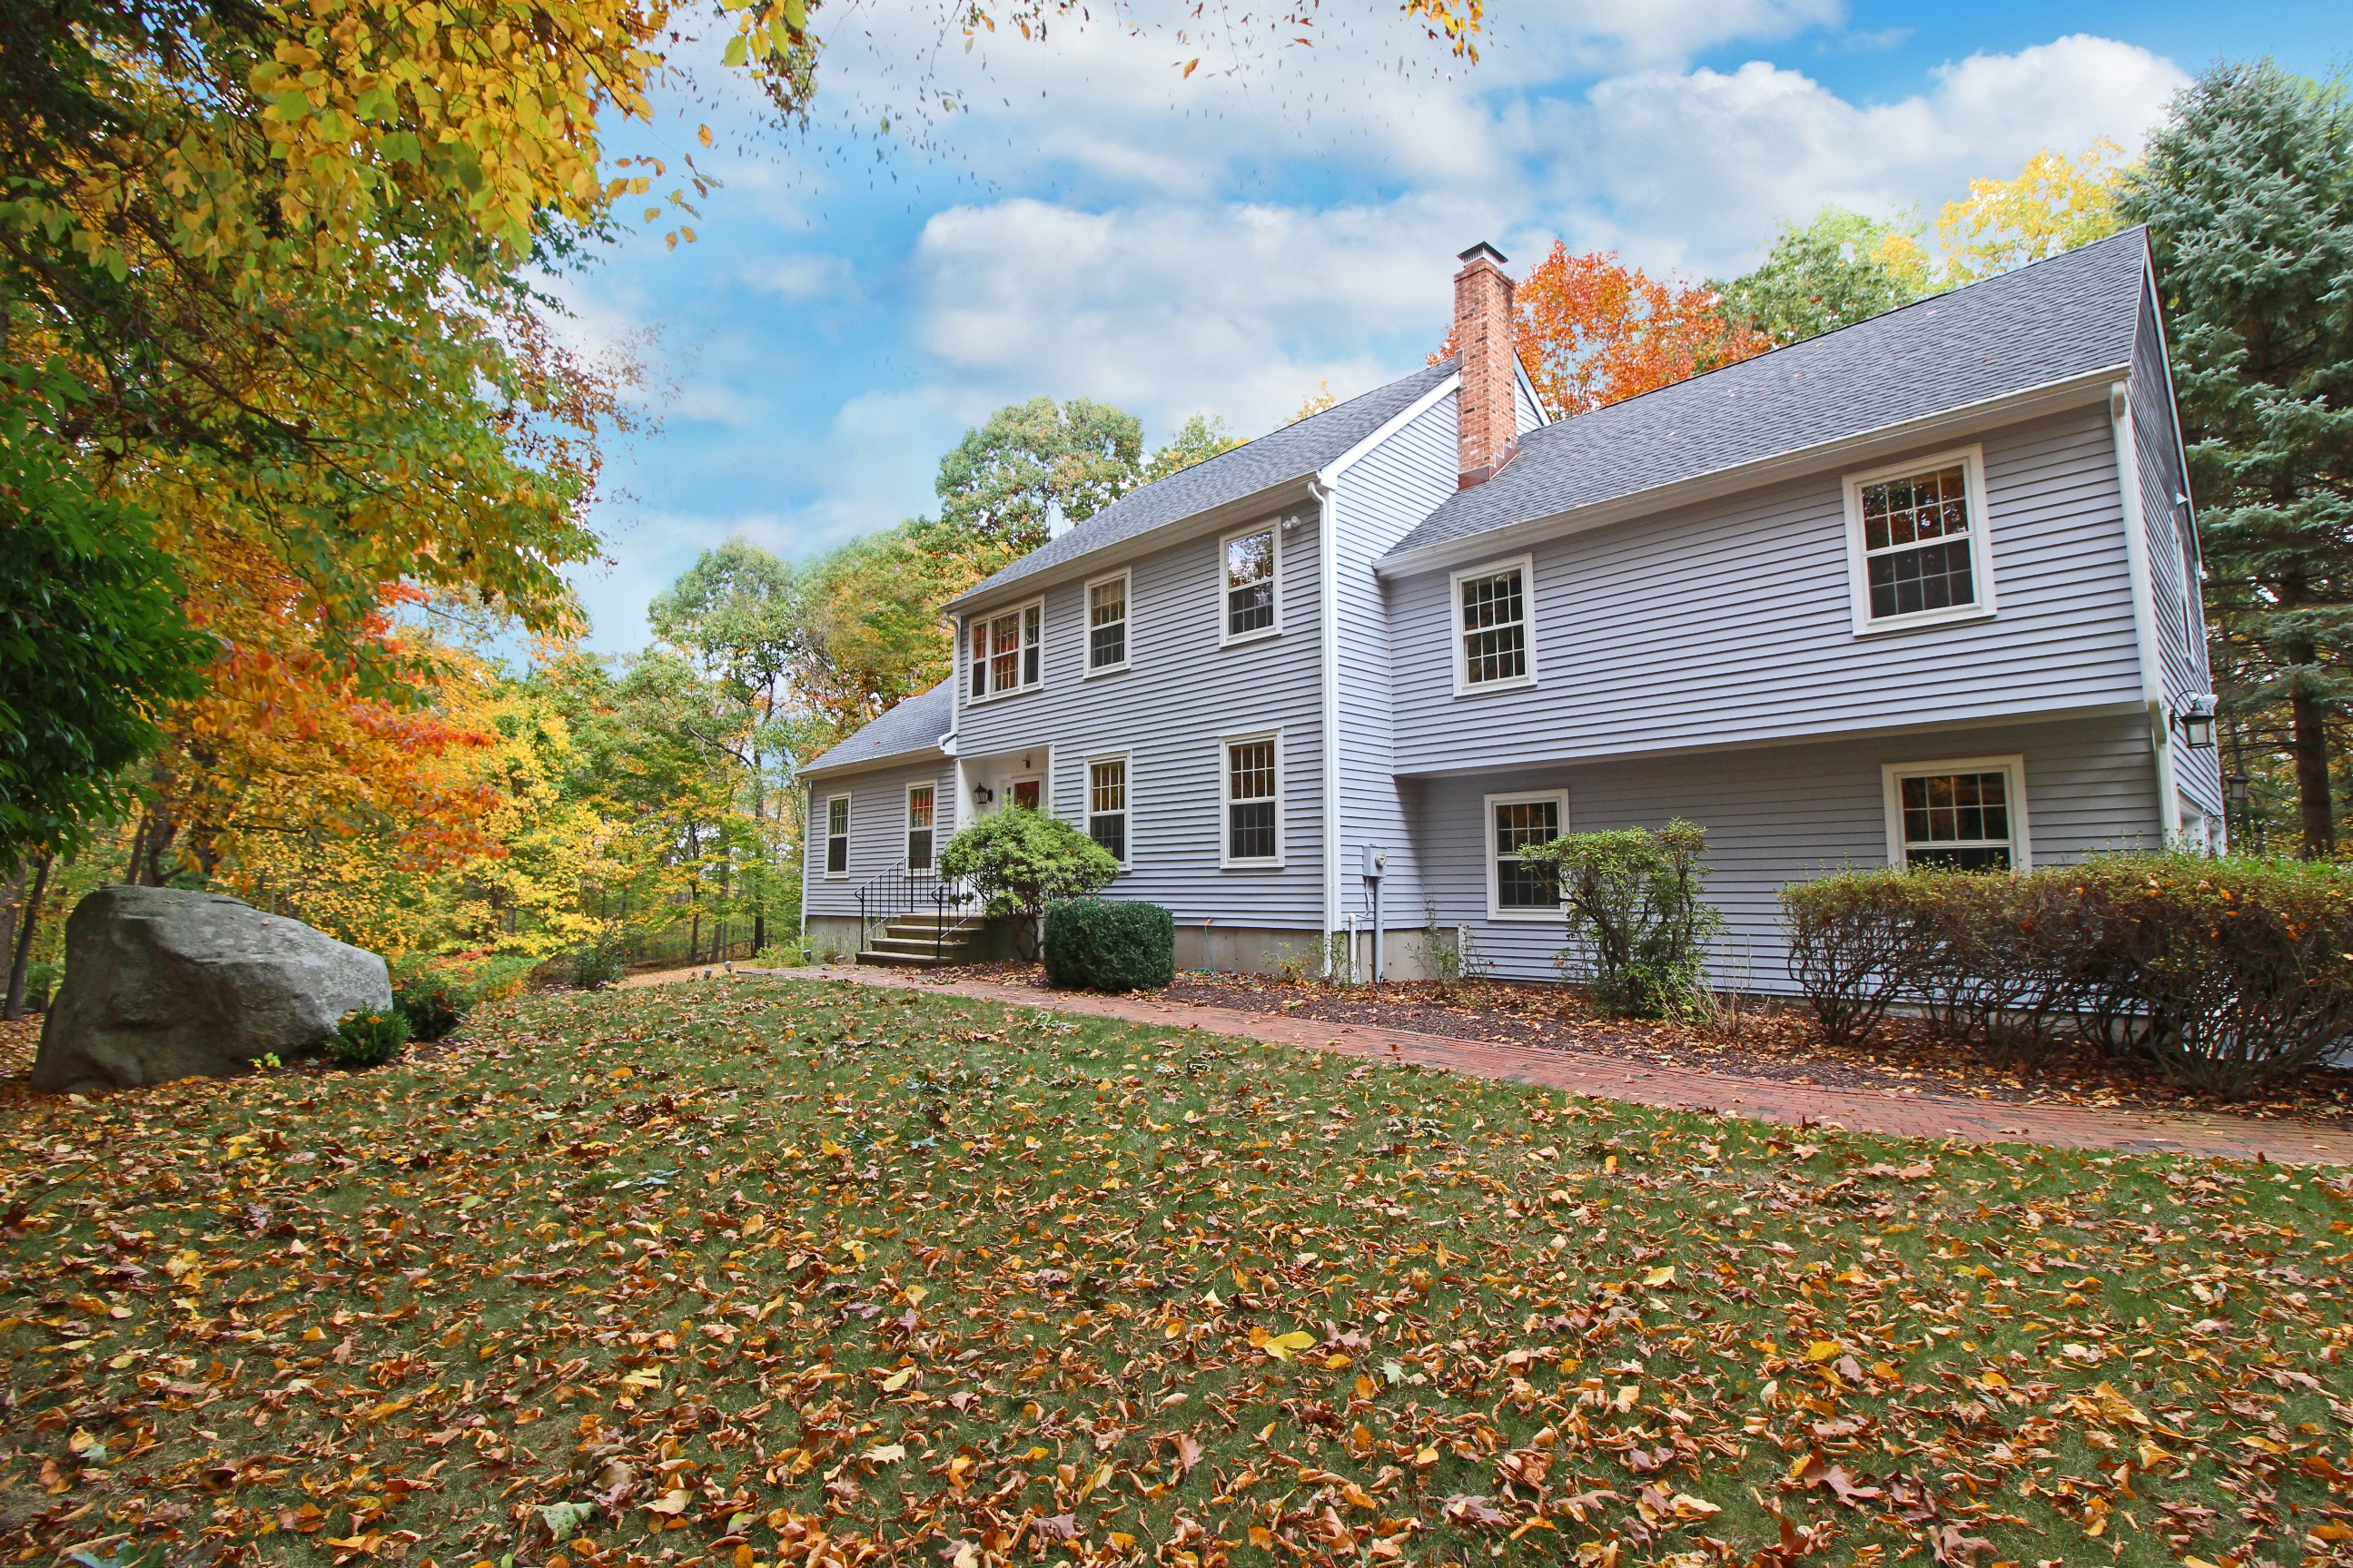 Single Family Home for Sale at Serenity and Transfixing Beauty 14 Indian Rock Place Wilton, Connecticut, 06897 United States